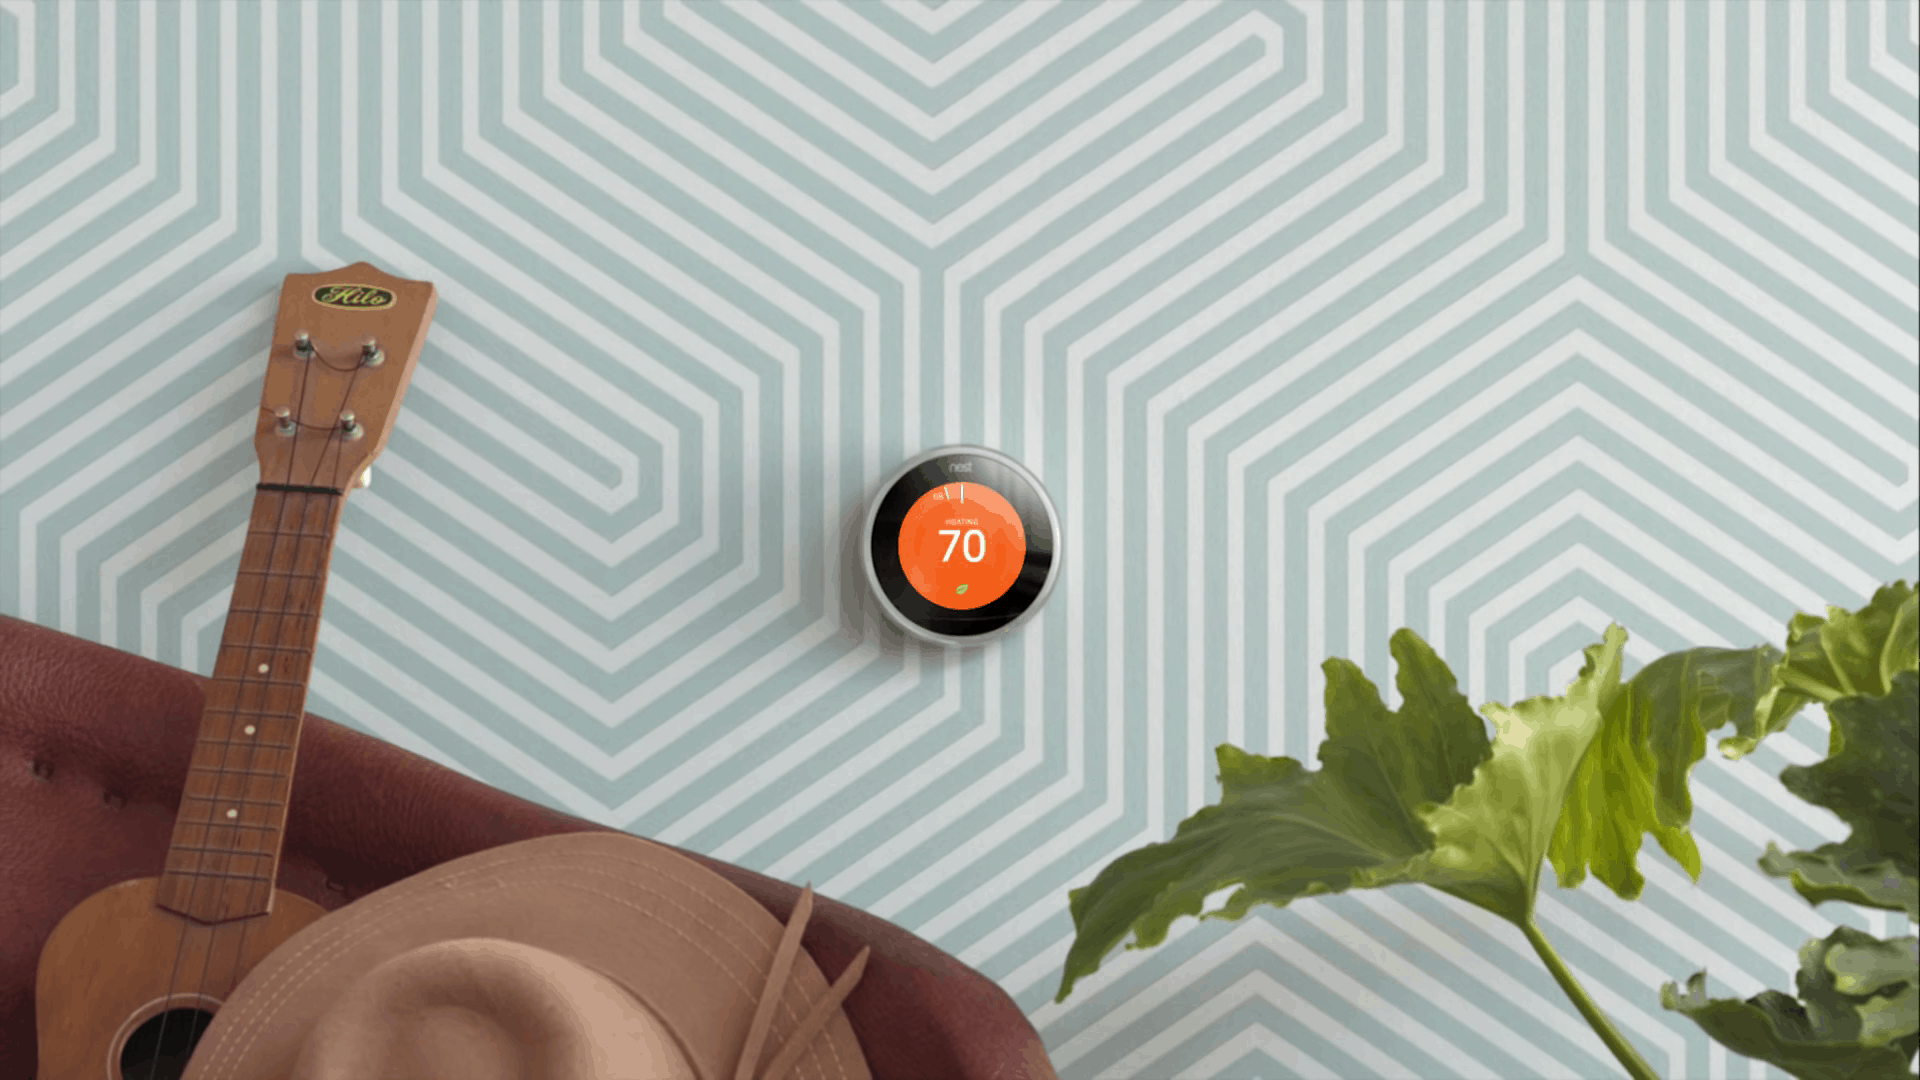 Can i Use a Nest Thermostat in My Apartment